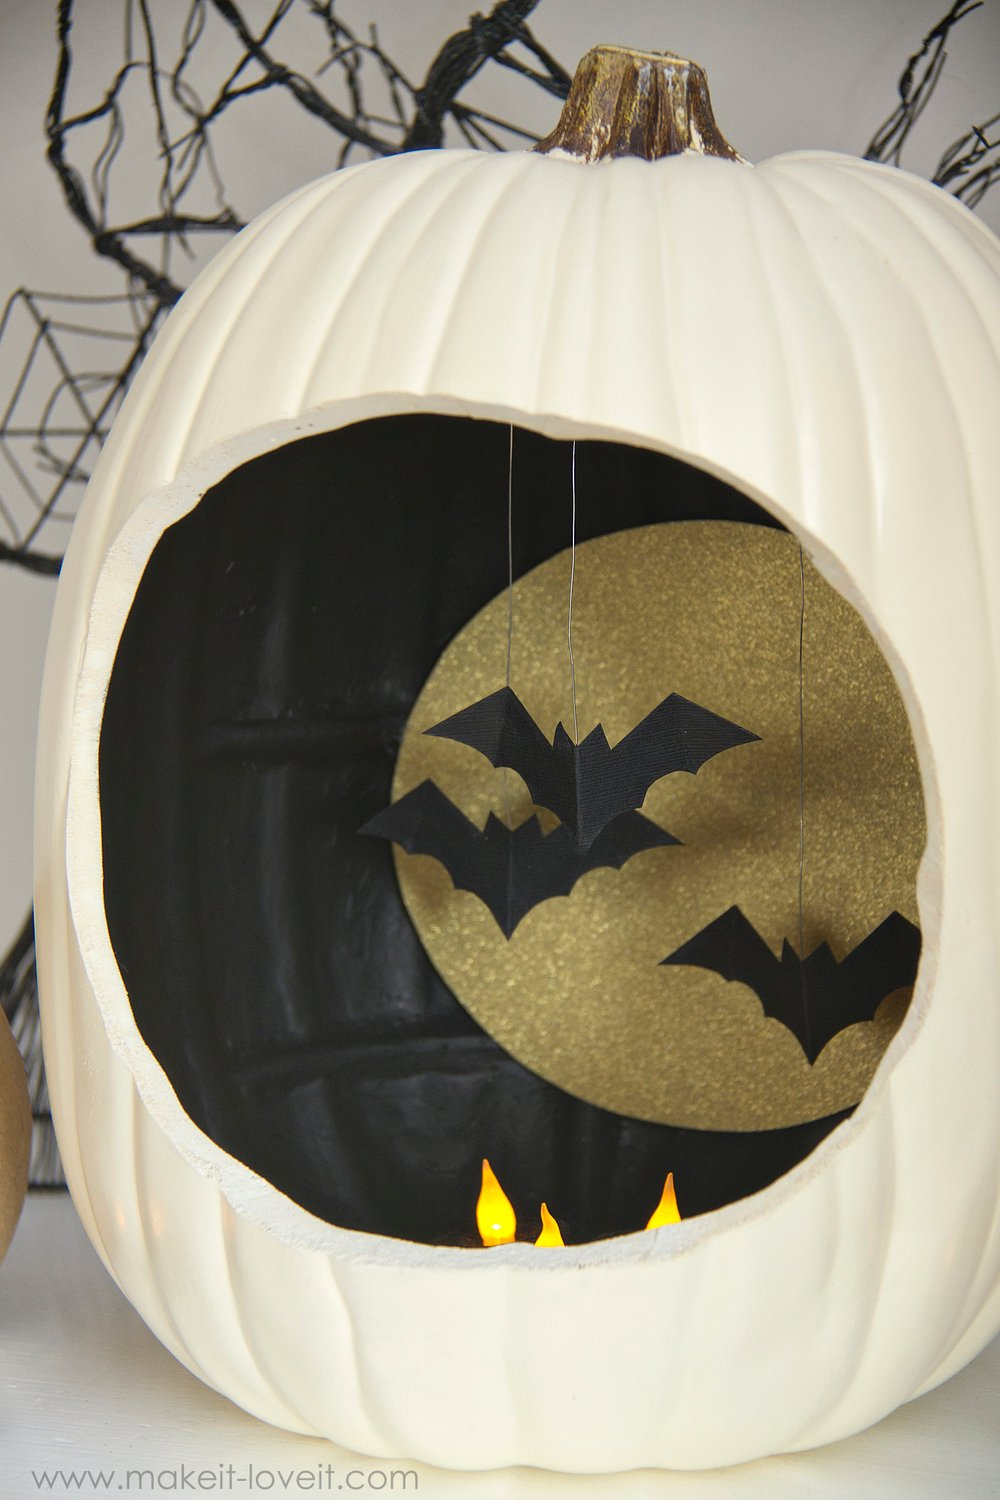 Autumn decor: pumpkins with hanging and flying bats